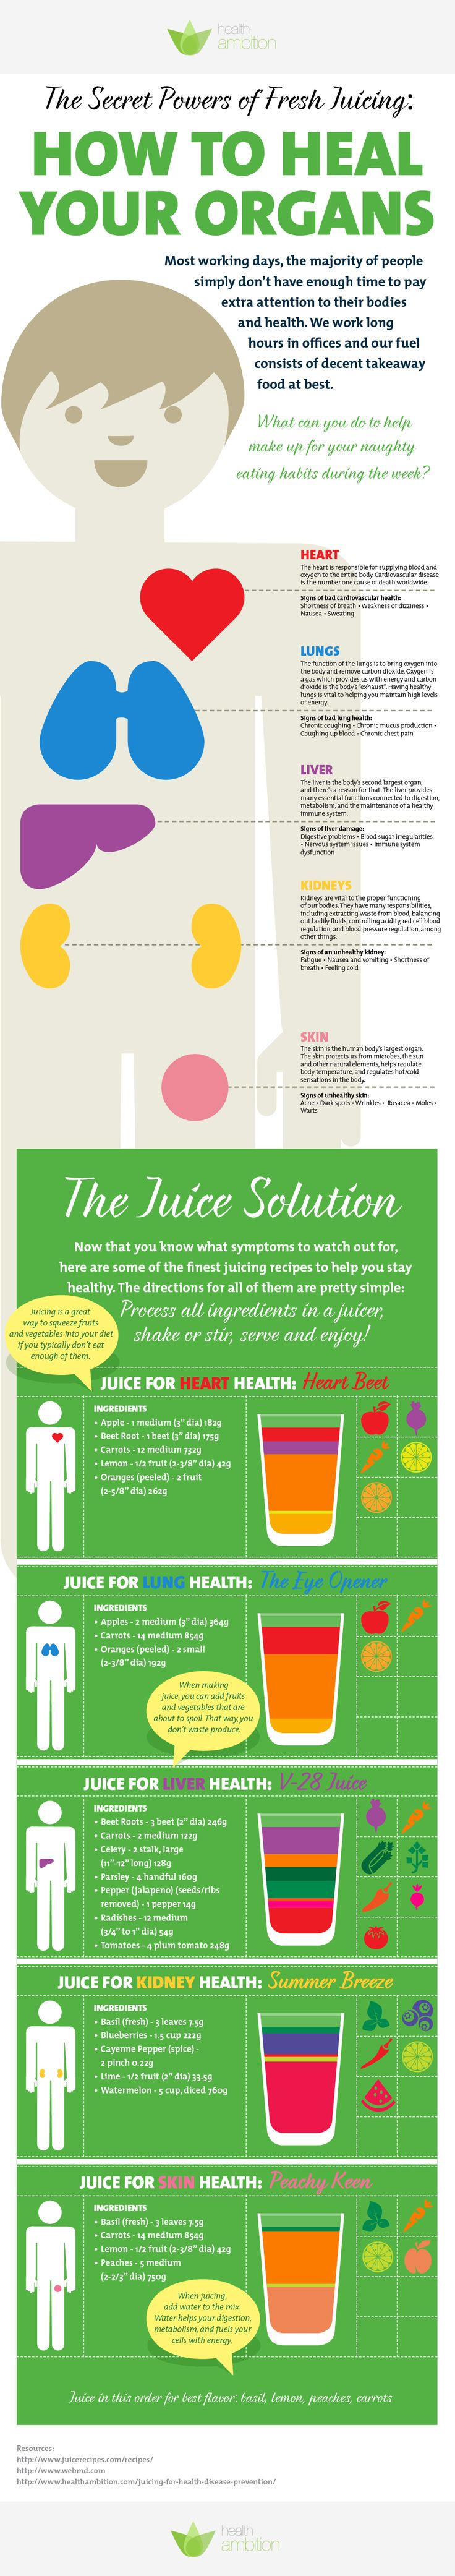 How to Heal Your Organs with the Secret Powers of Fruits Vegetables (Fresh Juice) | David Kovacs for Elephant Journal | I dont advocate #juicing. This infographic offers up the fruits and veggies that can, indeed, support the health of your various organs. My suggestion: Make a great green salad (leave the peel on cucumbers, if you use them), and eat a big bowl of it, every day, along with a variety of fruit. Peace. ~Ellen